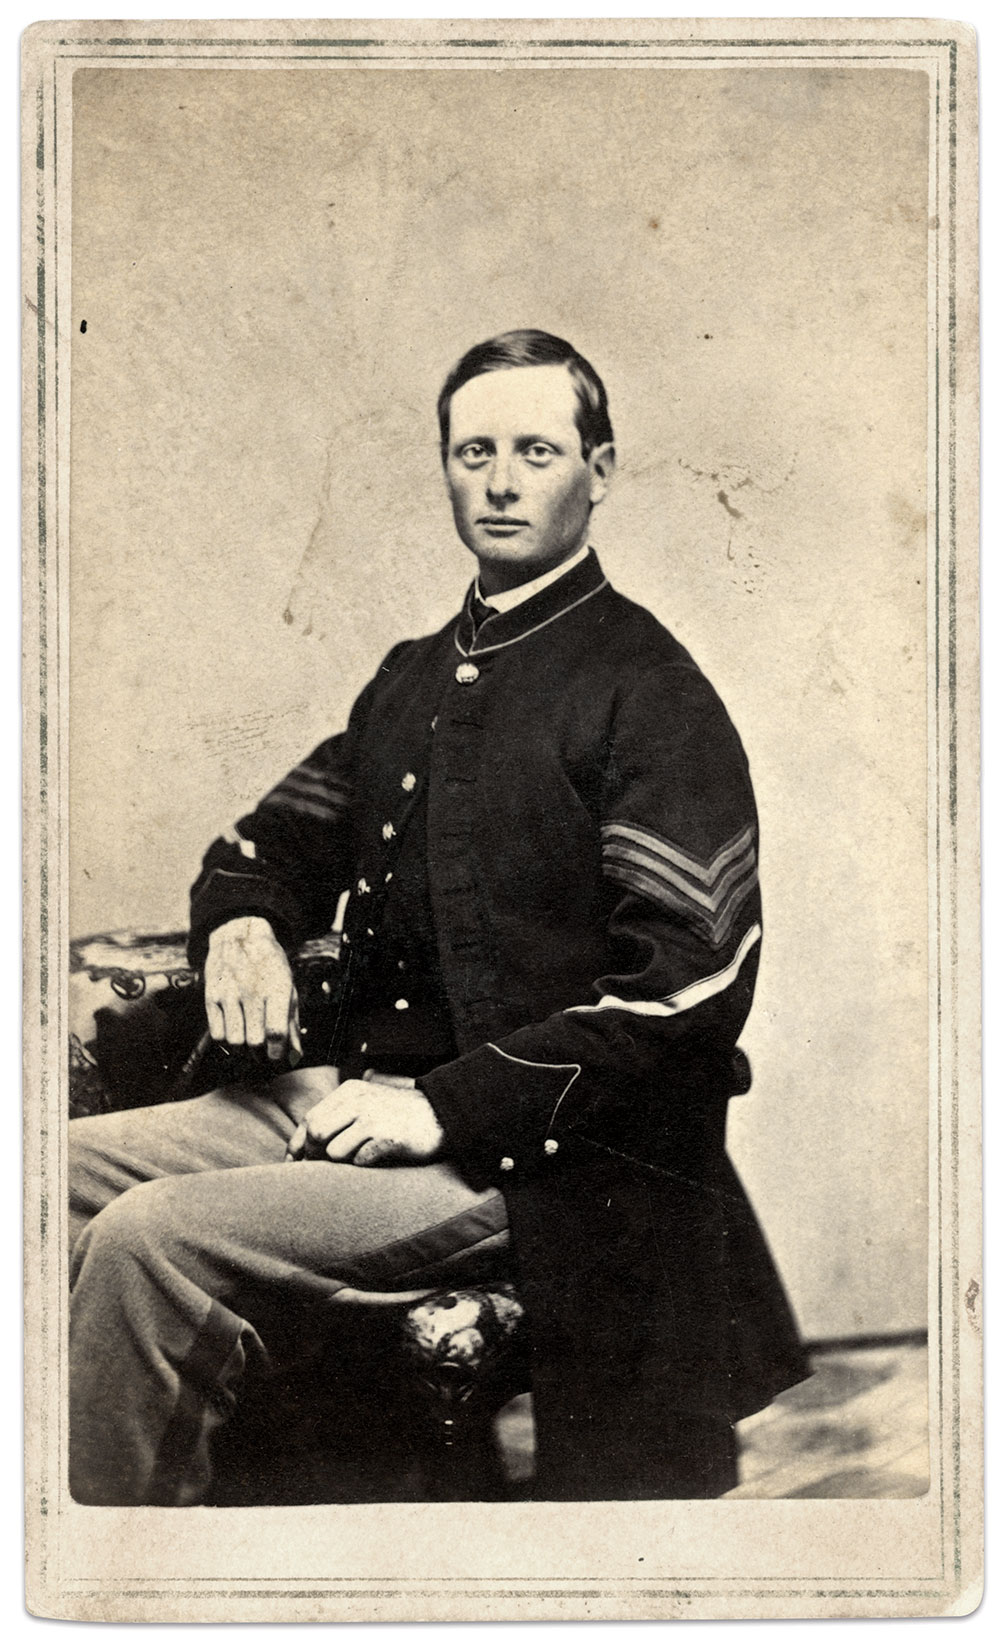 Little, pictured as a sergeant in 1864. Carte de visite by David O. Furnald of Manchester, N.H. Dave Morin Collection.